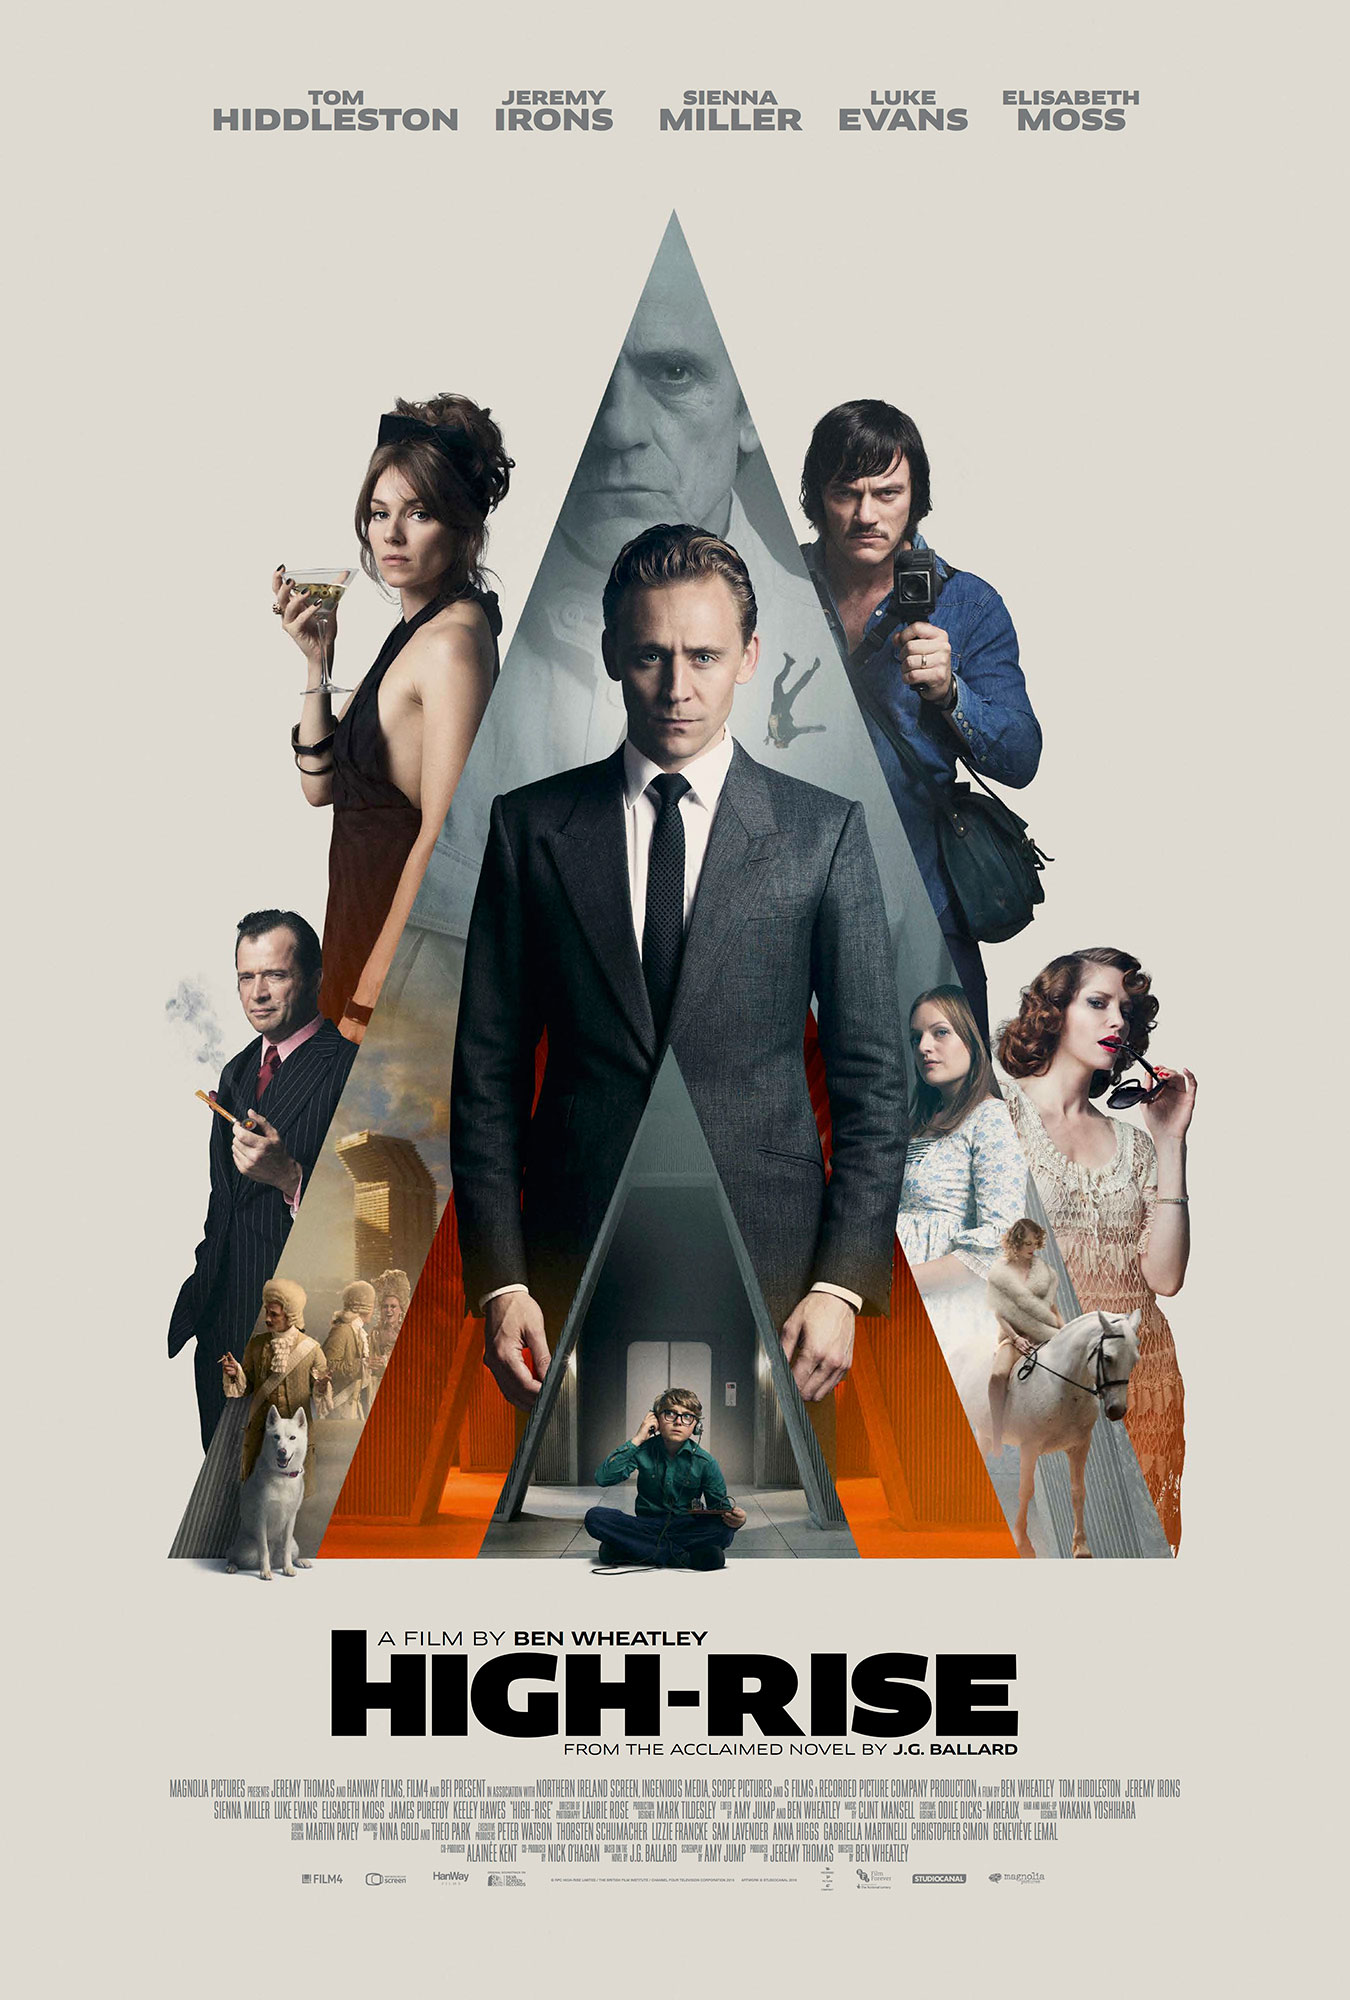 high-rise-movie-poster-images